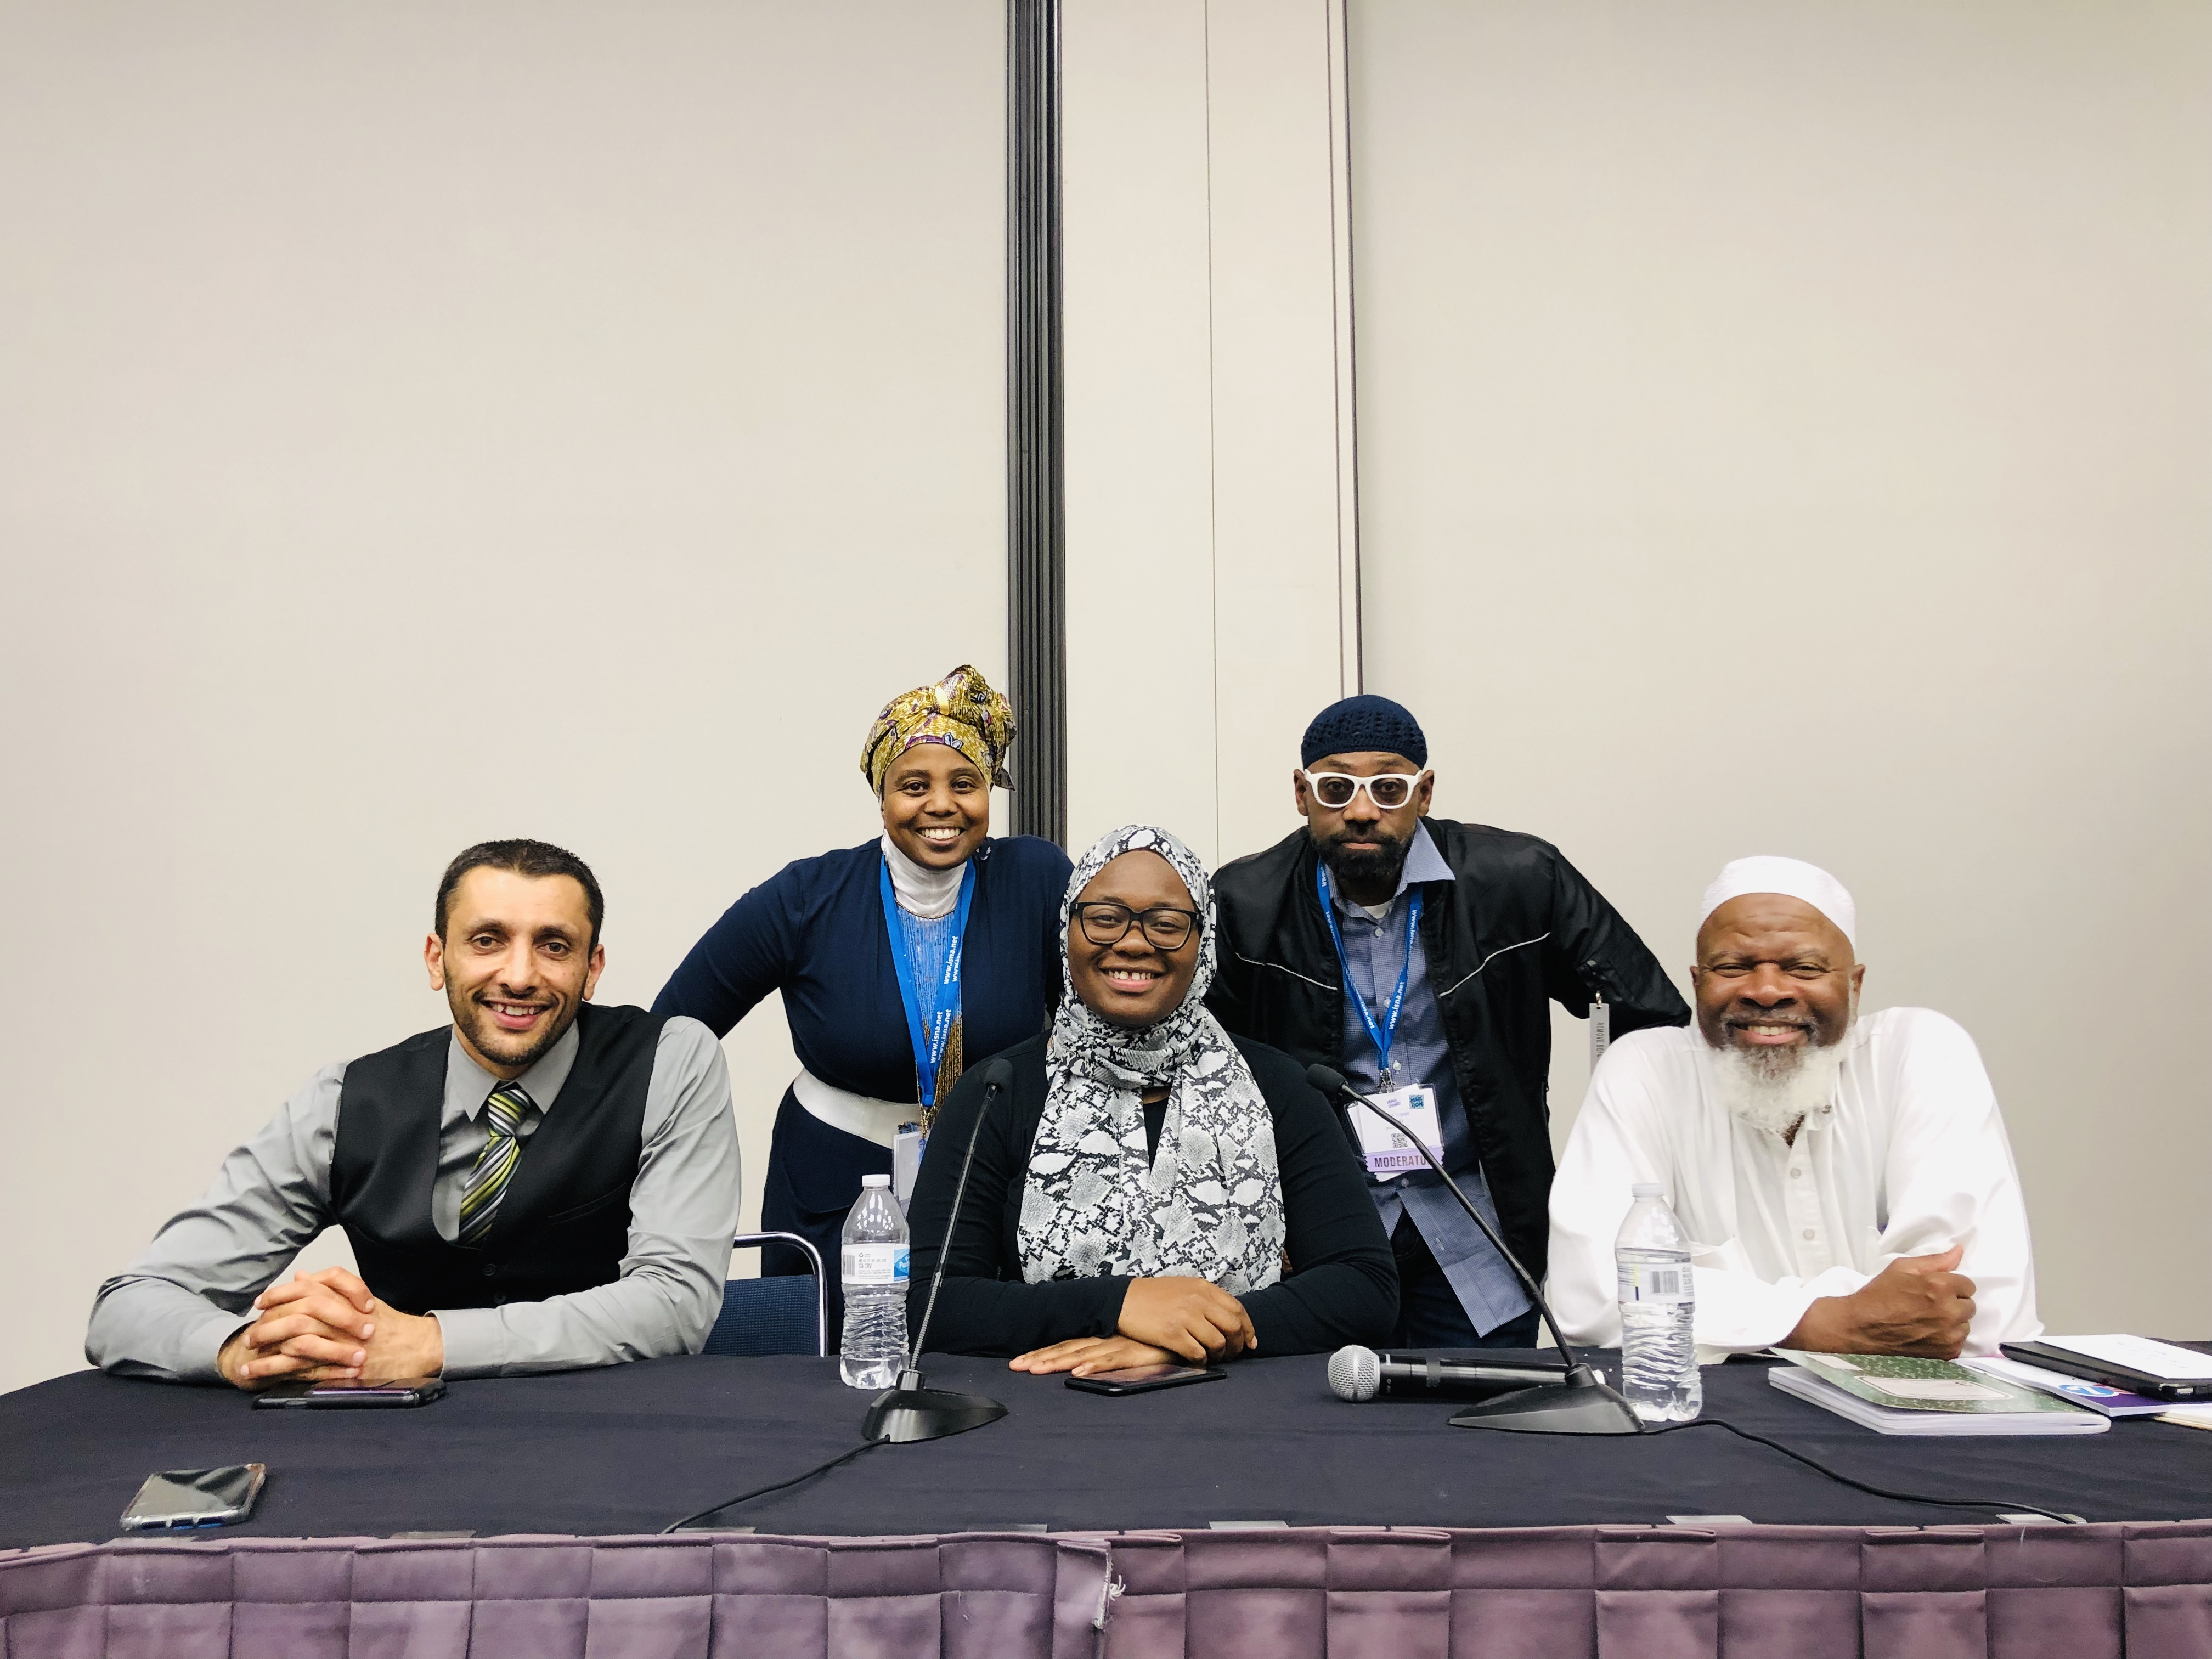 All Star Marriage Panel Draws Standing Room Only Audience at ISNA